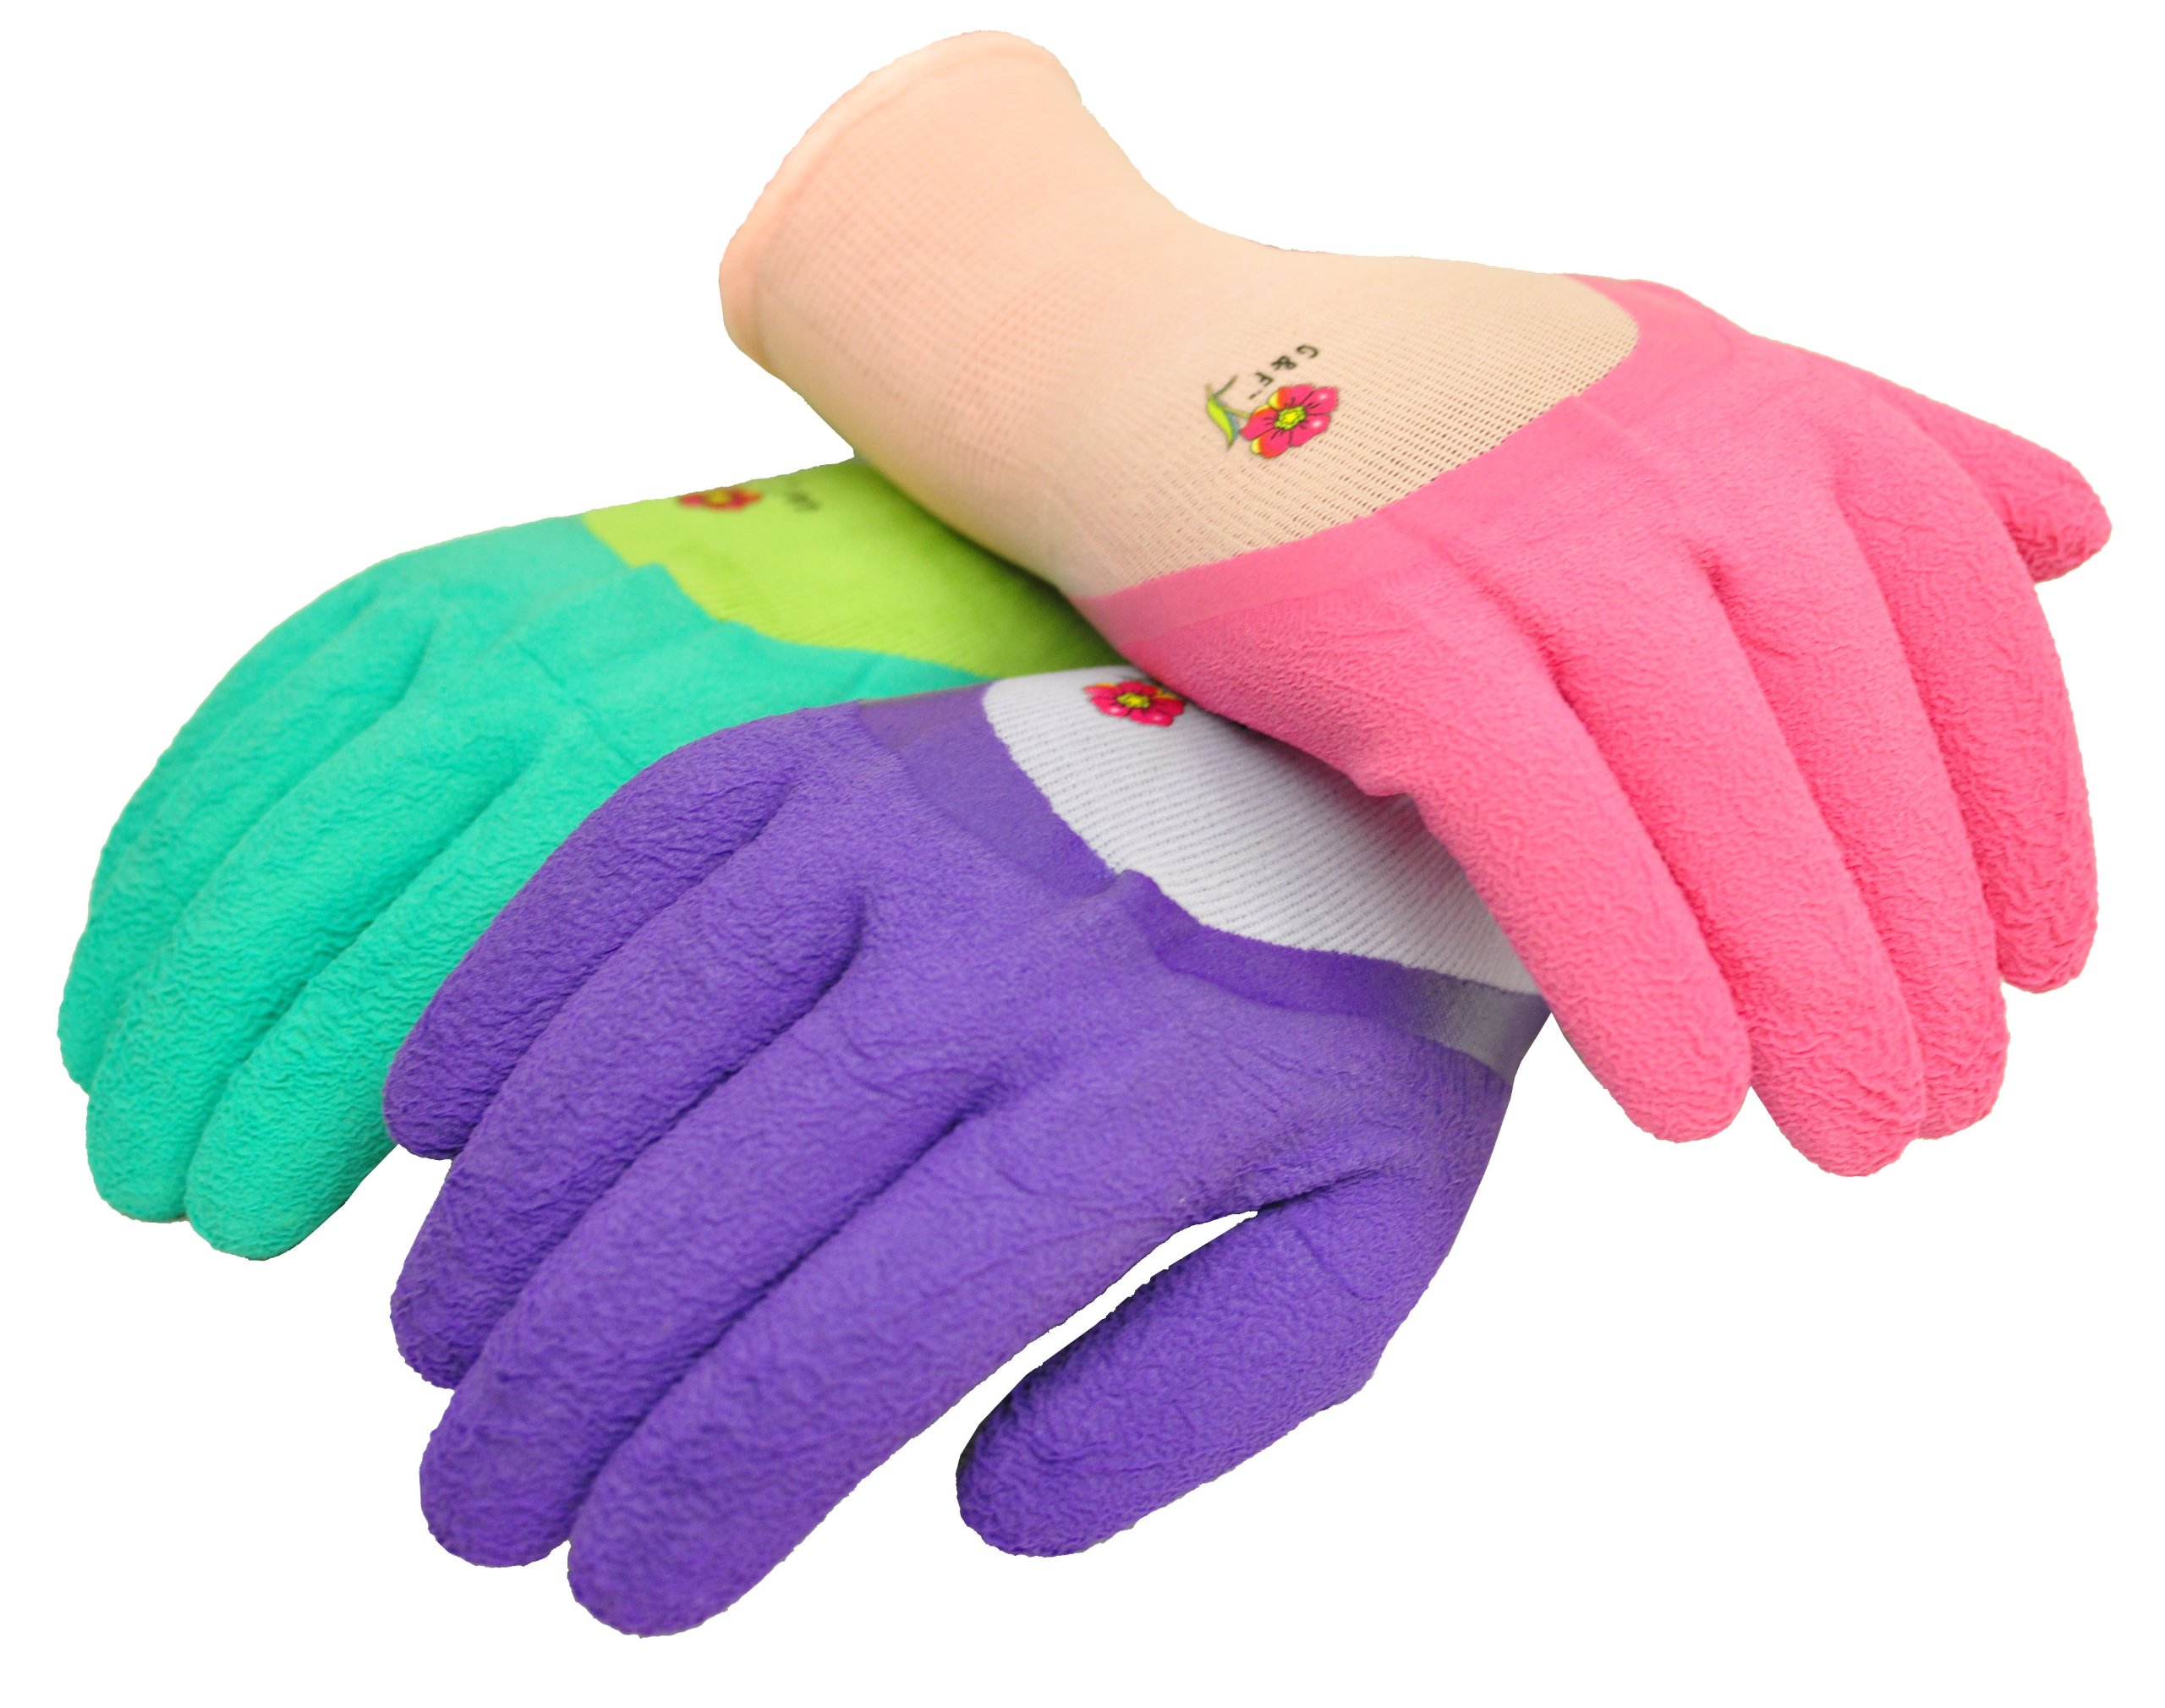 G & F 2030 Women Garden Gloves with Micro Foam Nylon Latex Coated, Texture Grip, 3 Pair Pack by G & F Products